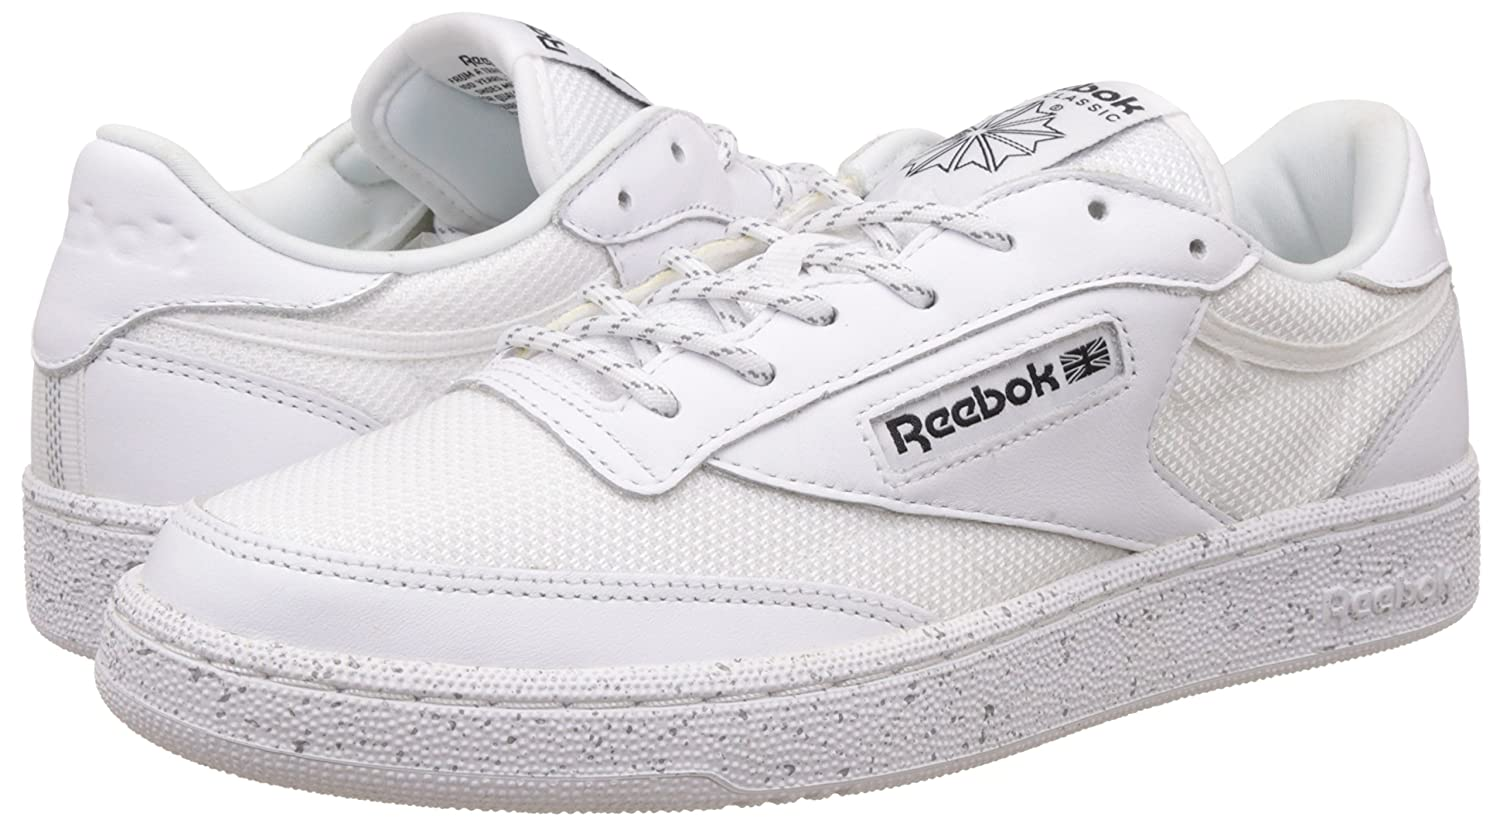 4ac5aa90d58905 Reebok Classics Men s Club C 85 St Tennis Shoes  Buy Online at Low Prices in  India - Amazon.in